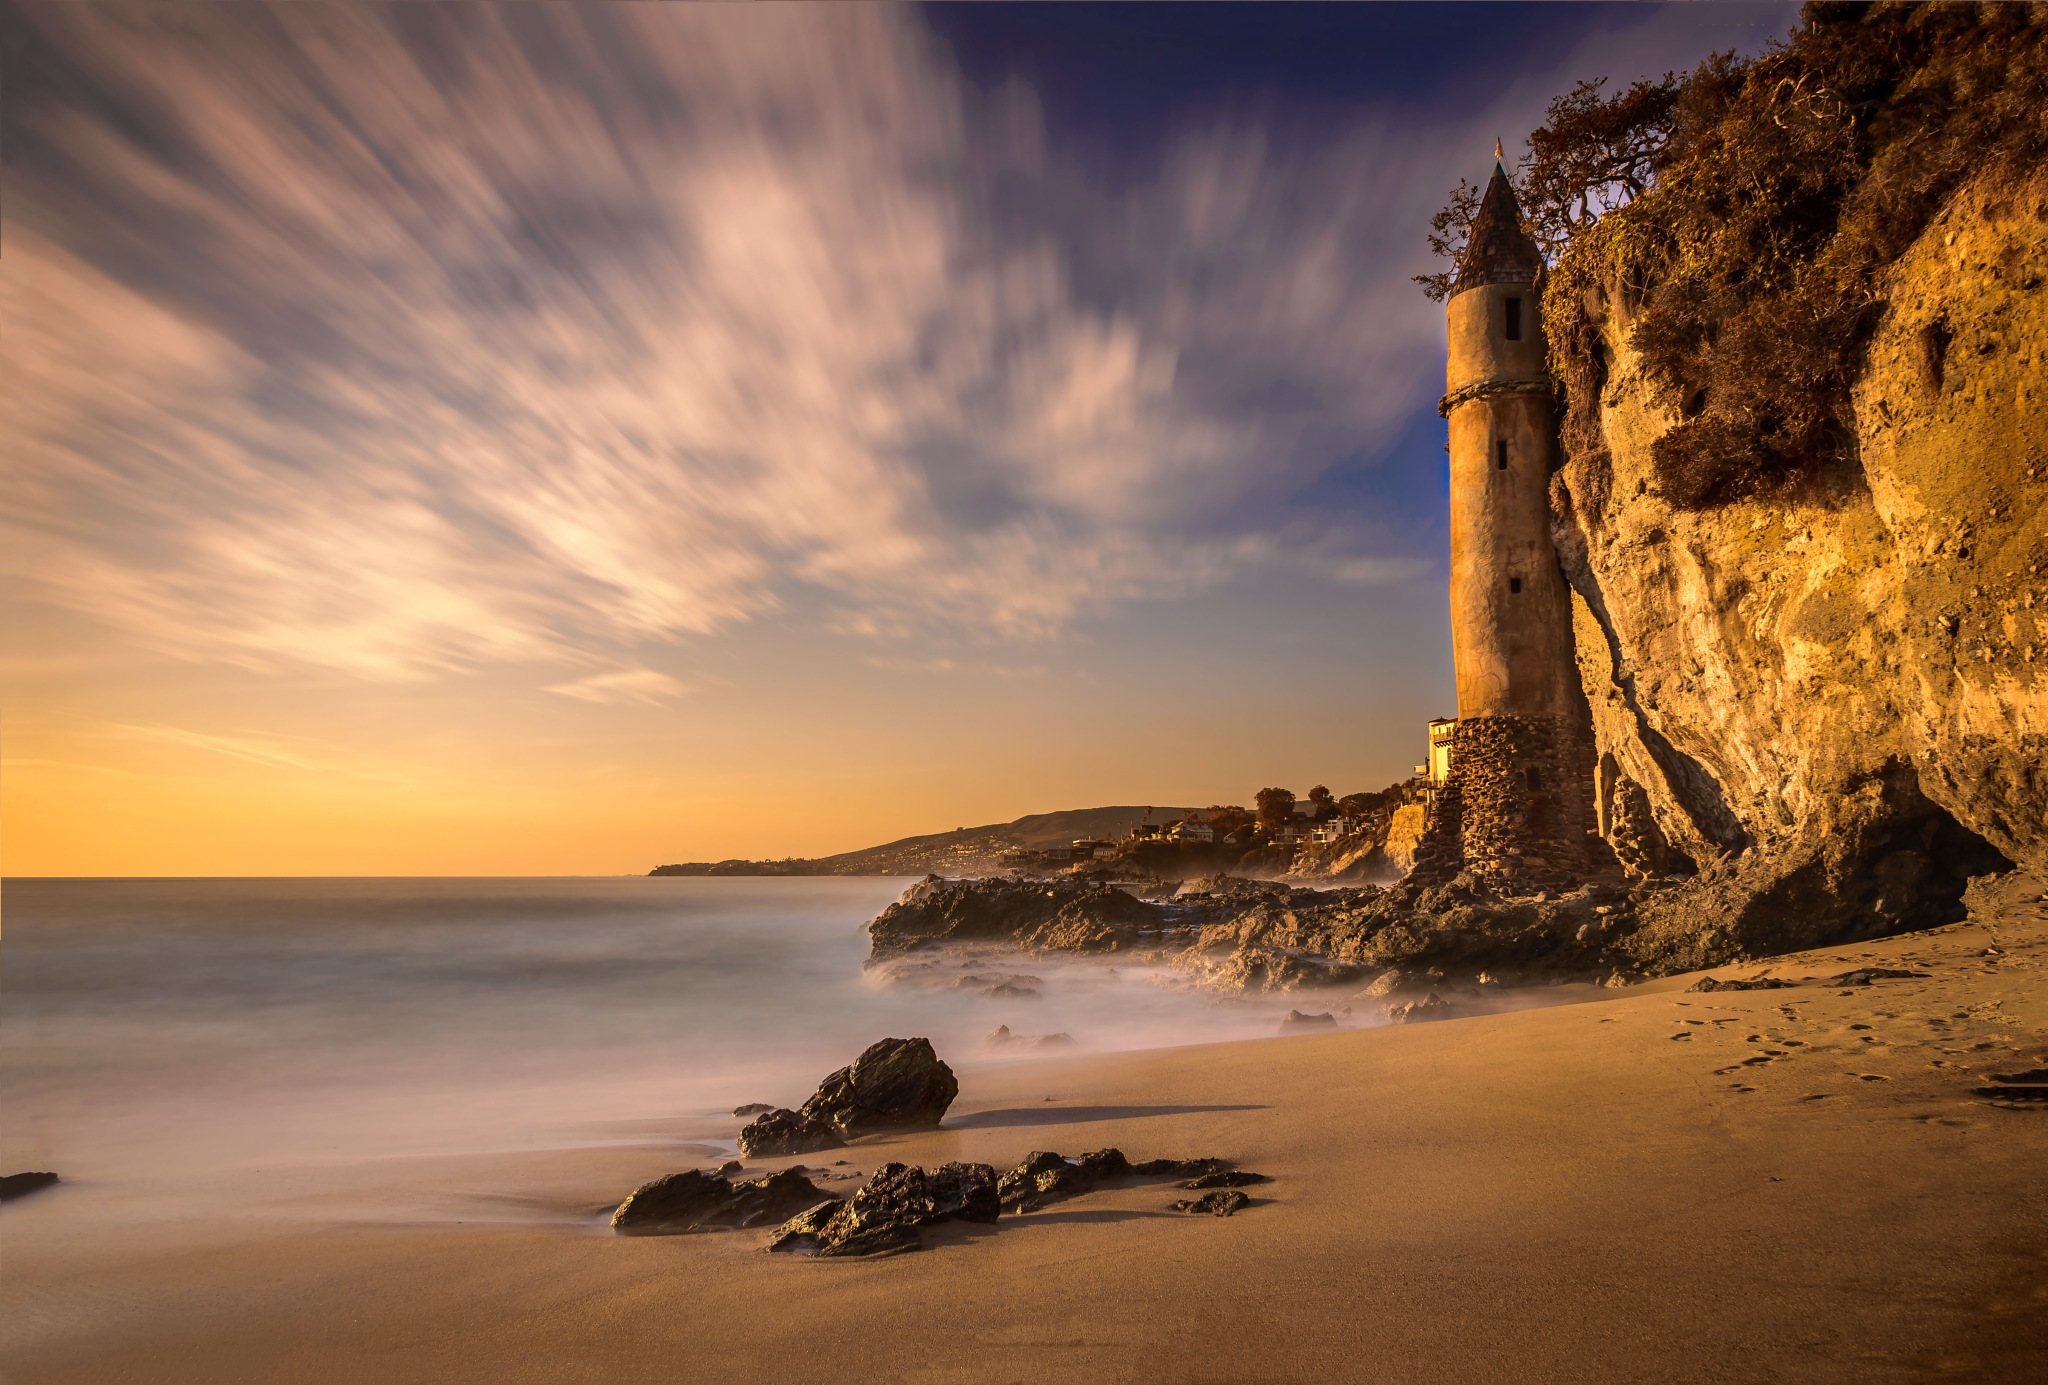 victoria beach tower by suhad chahla